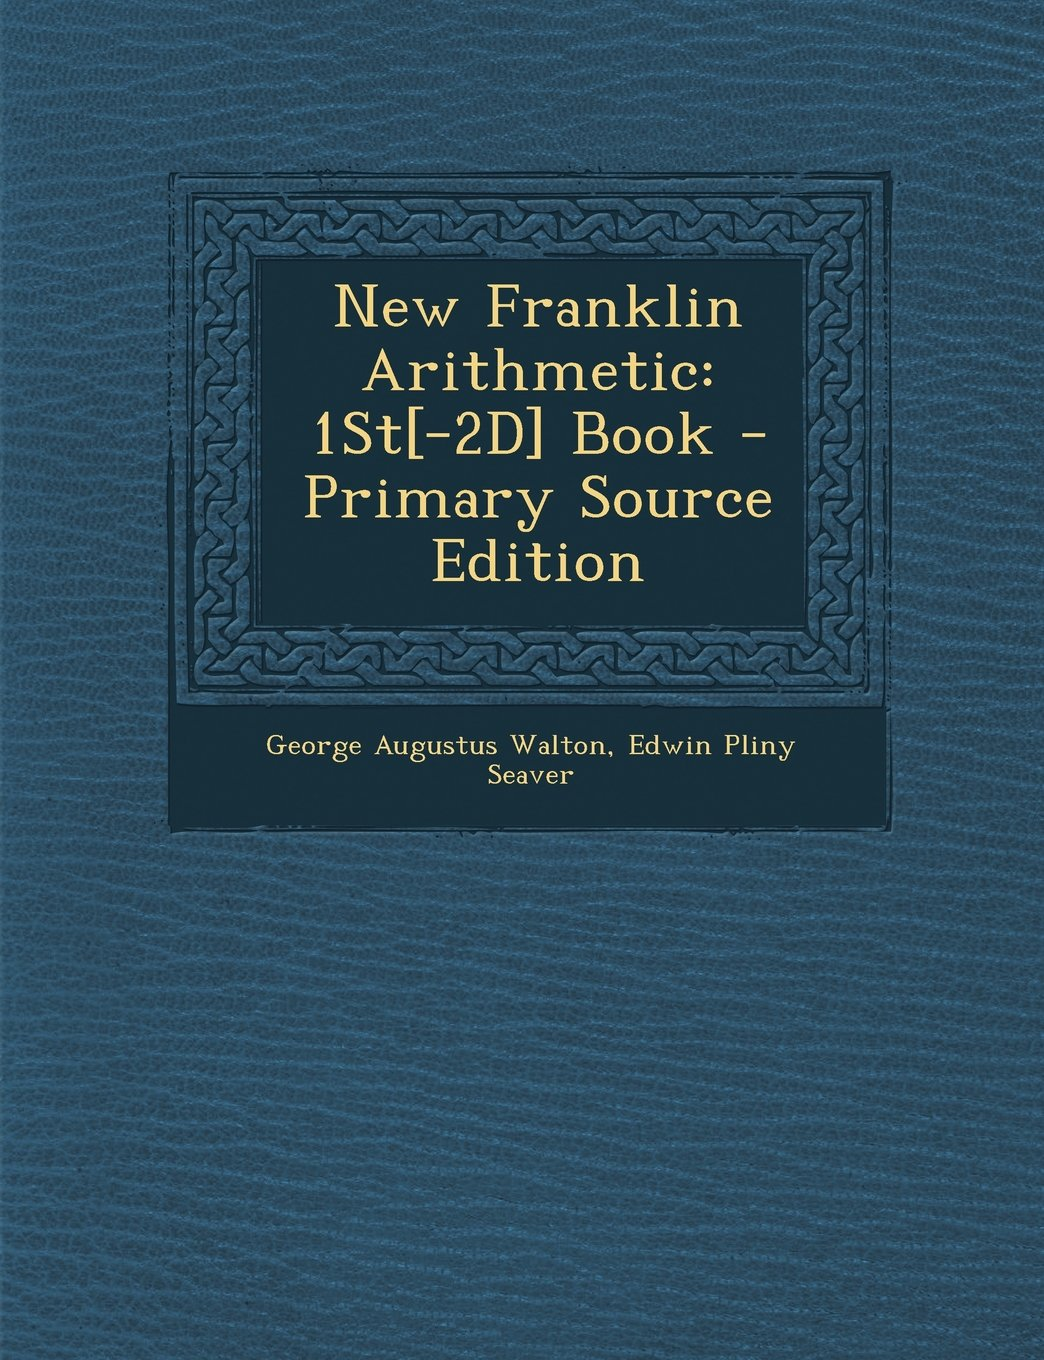 New Franklin Arithmetic: 1st[-2D] Book - Primary Source Edition PDF